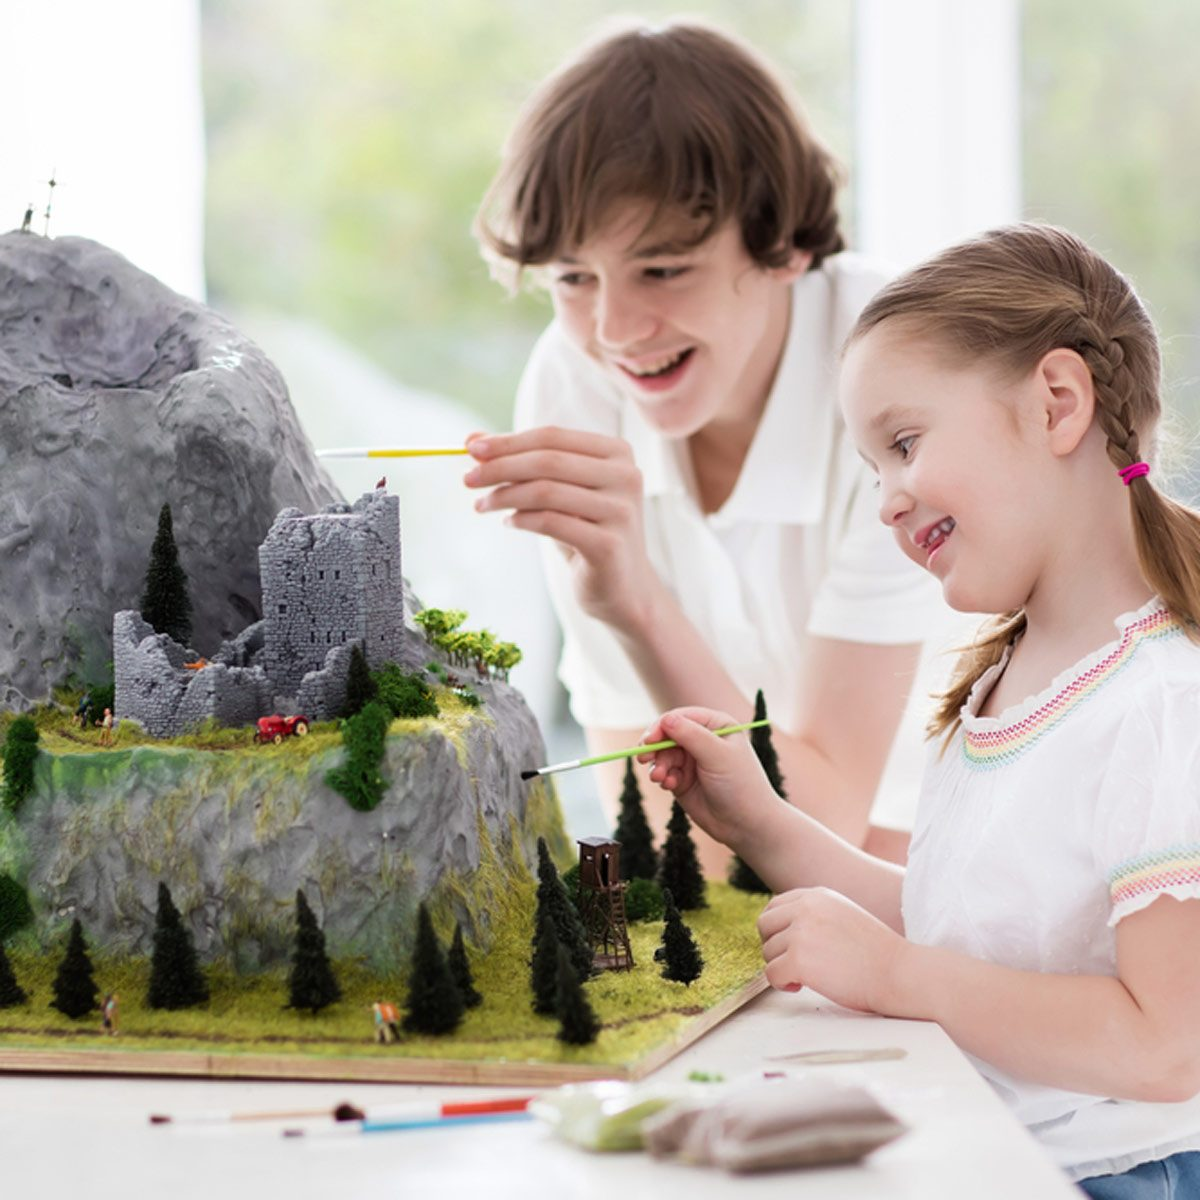 dfh17sep016_626606723 spray foam craft art project children miniature medieval mountain